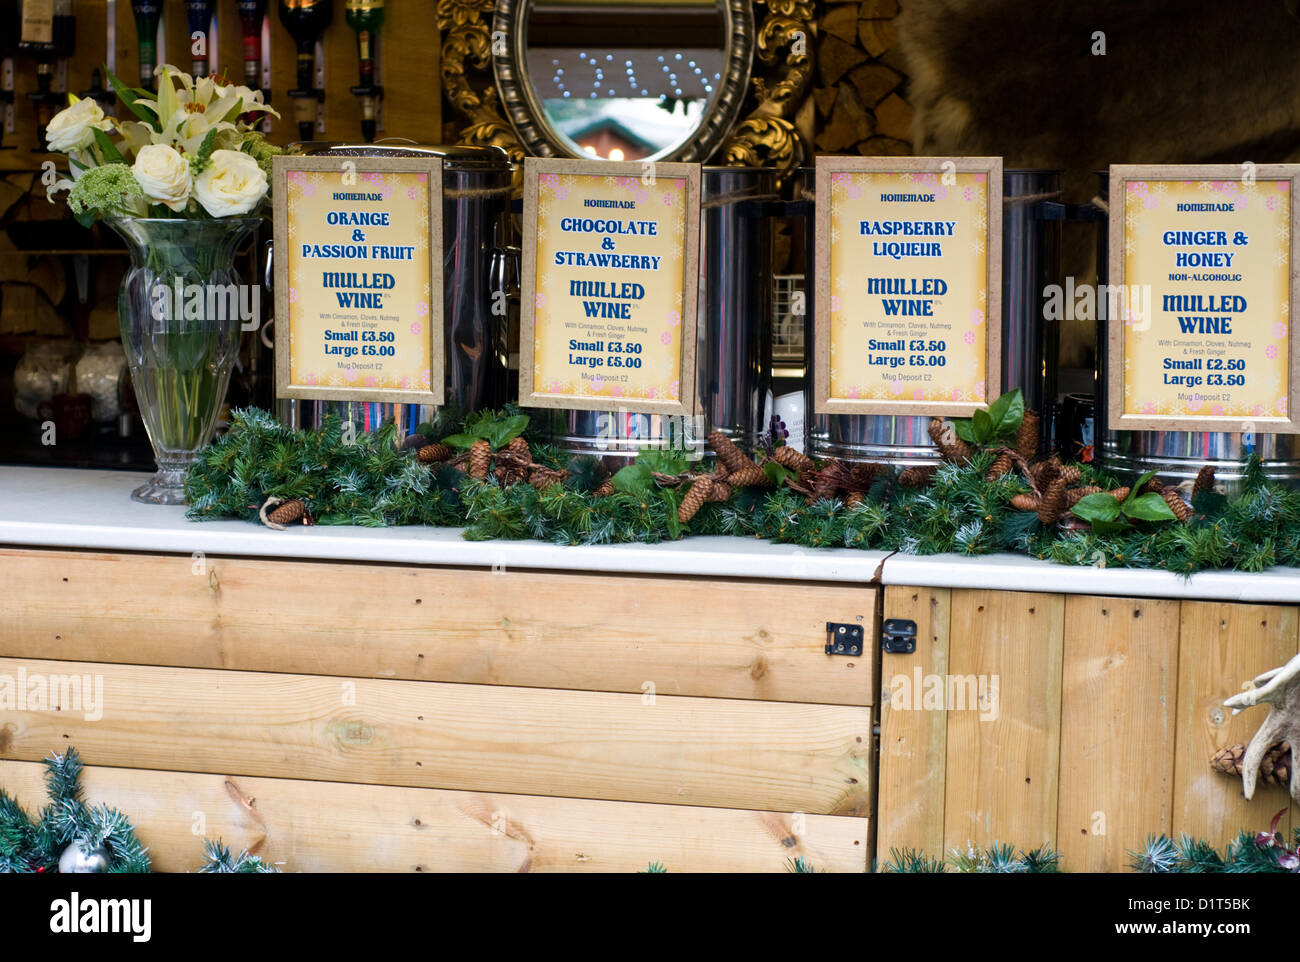 Mulled wine stall at Manchester Christmas market, England, UK - Stock Image